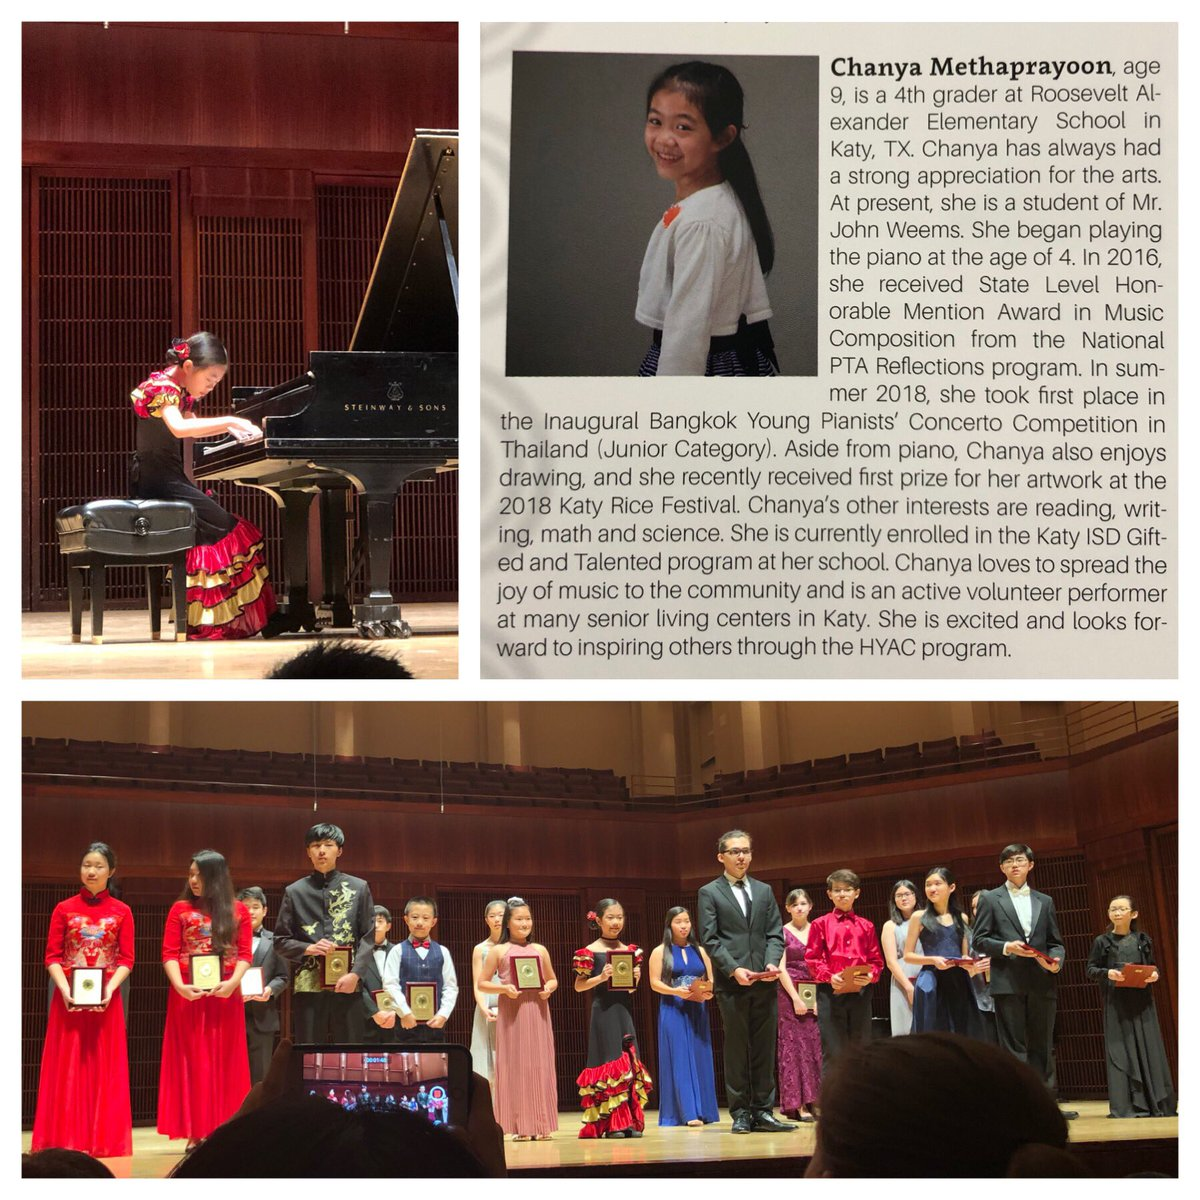 test Twitter Media - I had a blast performing in the Houston Young Artists' Concert at Stude Concert Hall, Rice University on January 12, 2019 https://t.co/GHYsXXXhwE